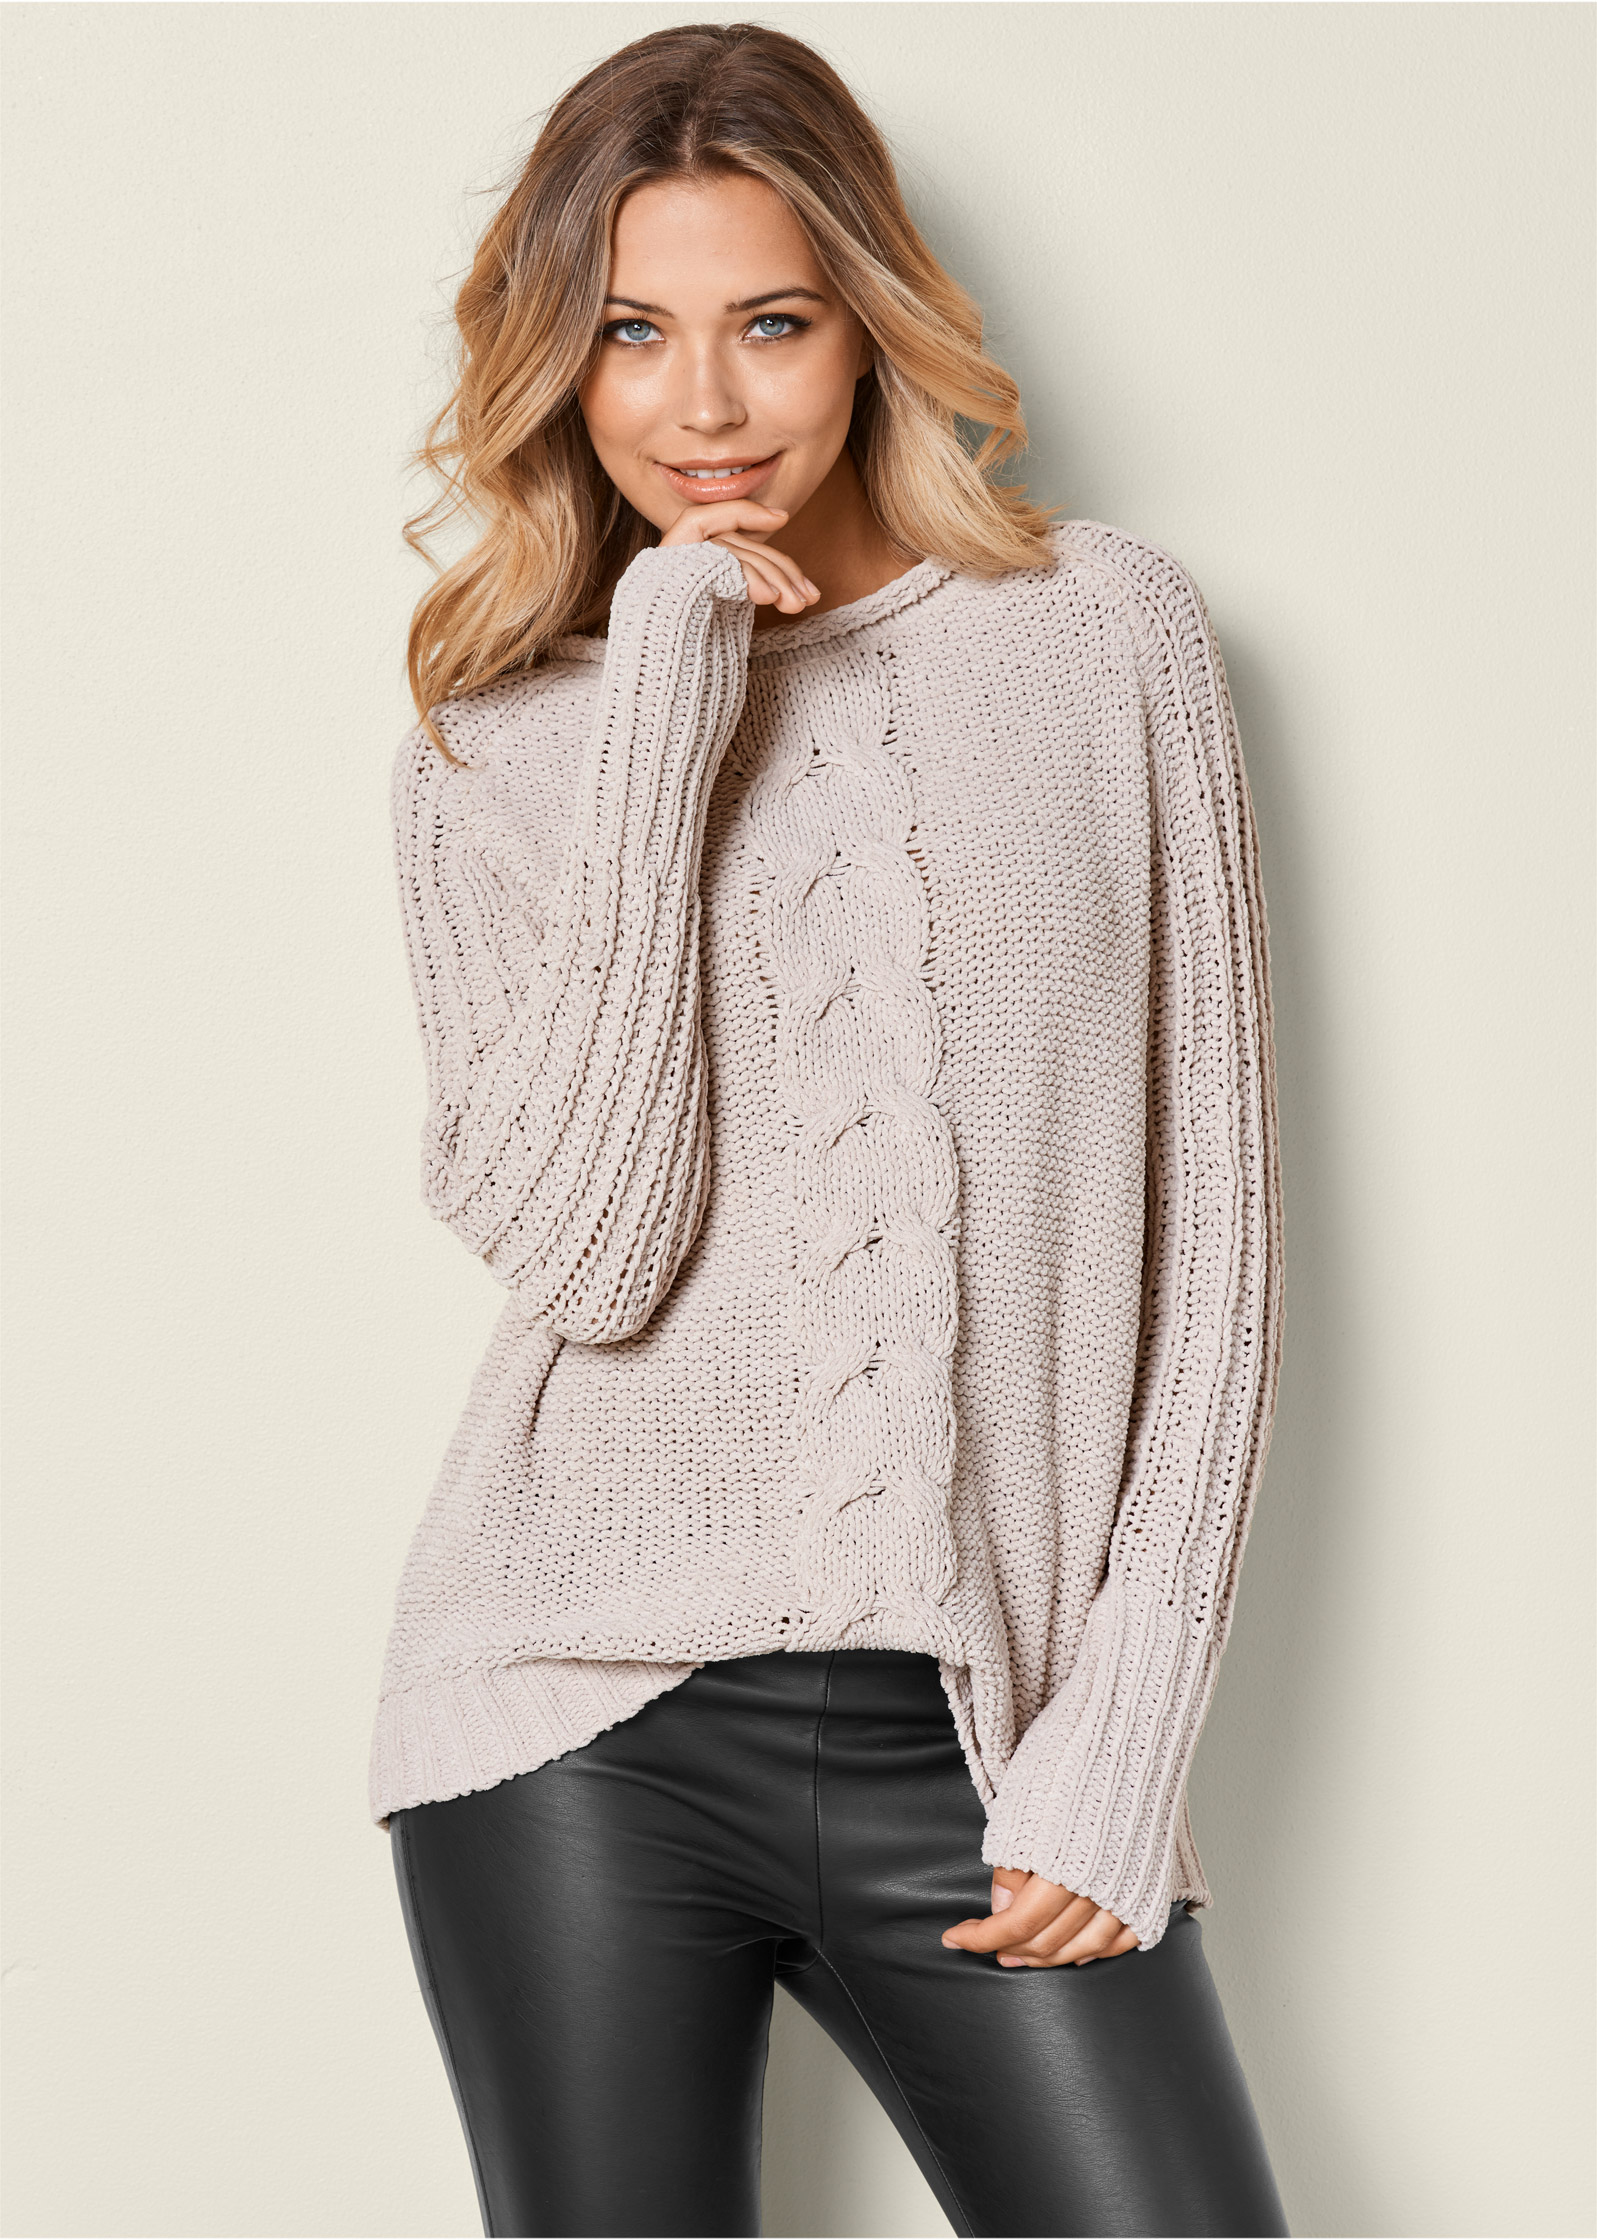 VENUS | OVERSIZED SWEATER in Beige